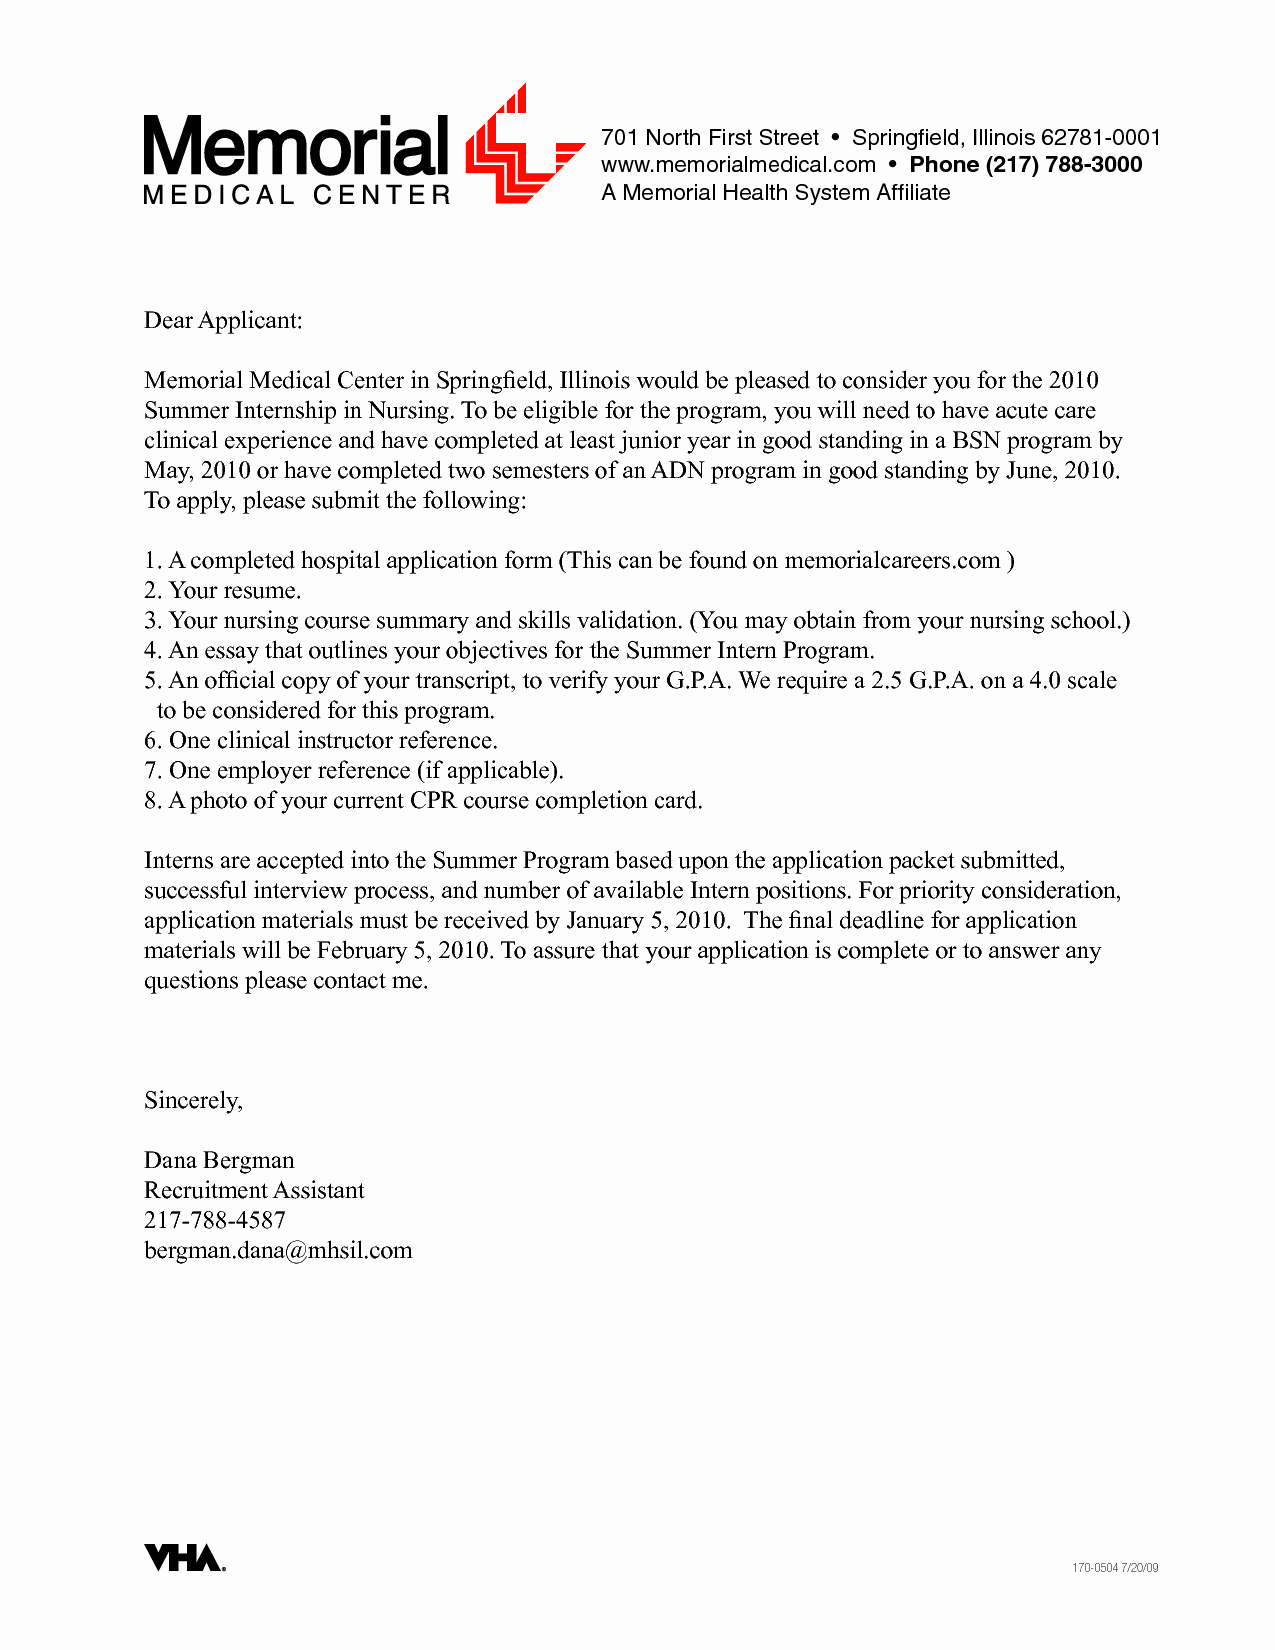 Sample Cover Letter for Clinical Research Nurse